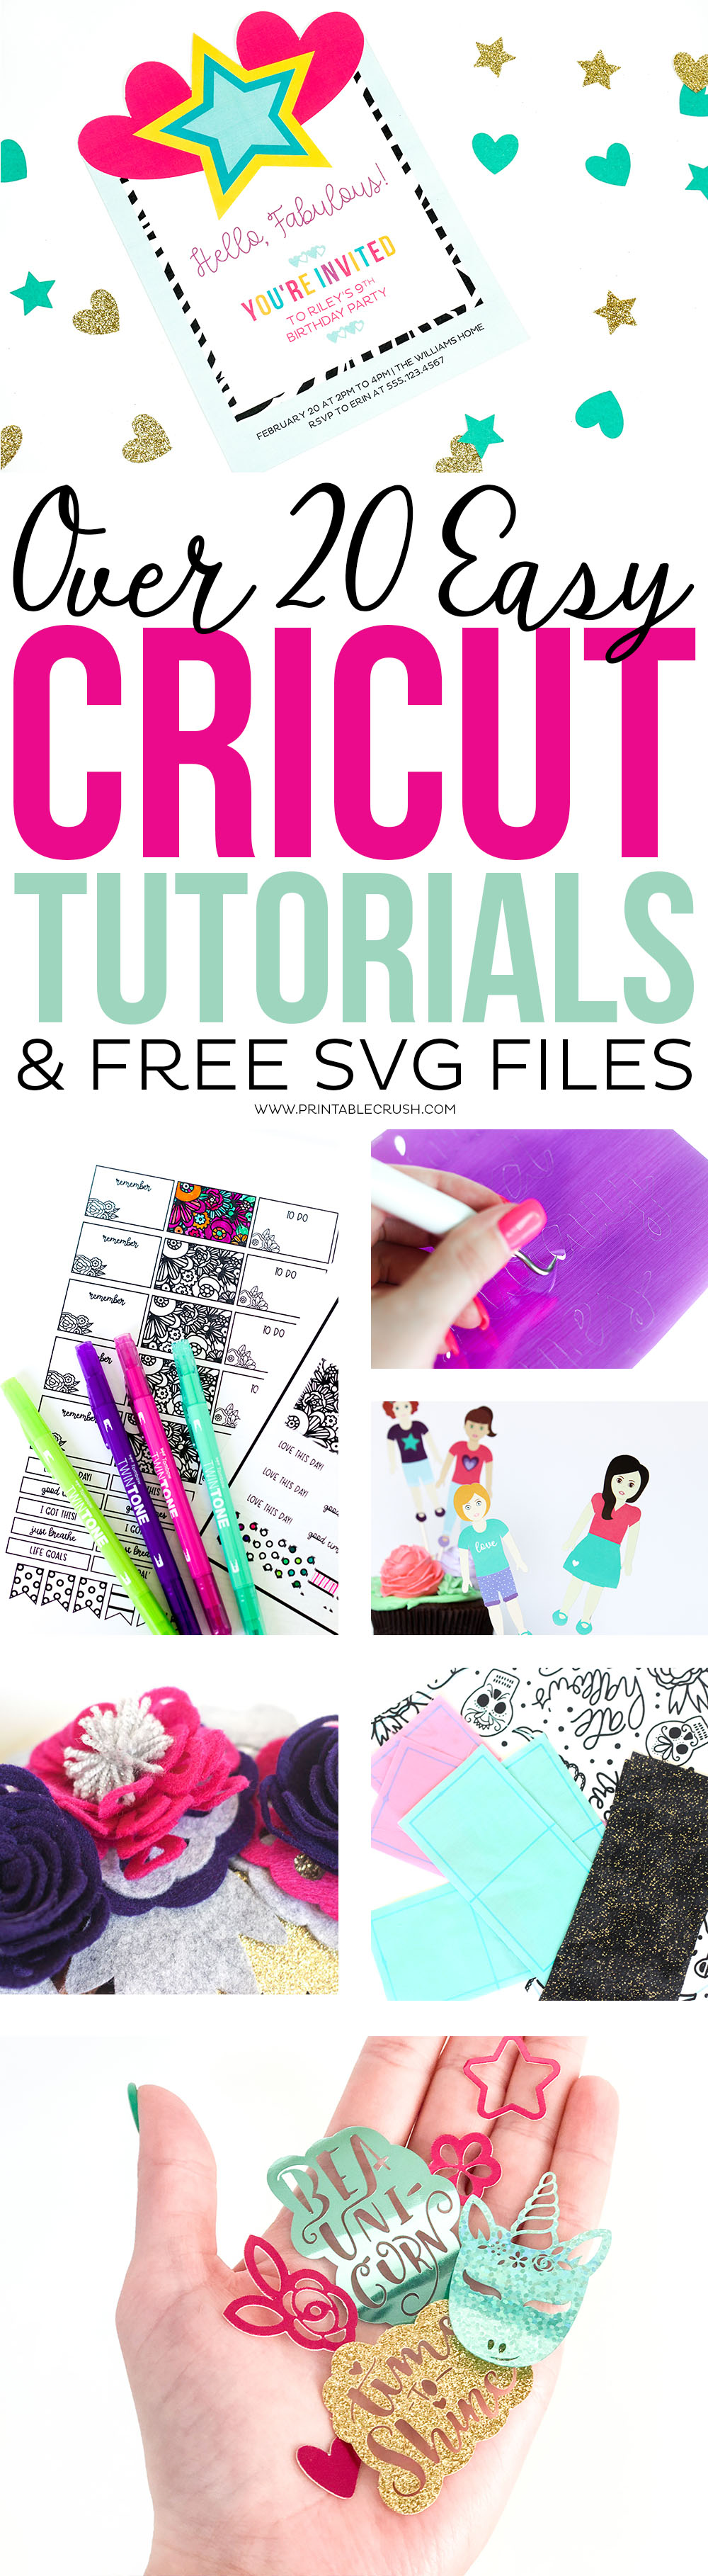 Free SVG Files Plus Over 20 Easy Cricut Tutorials